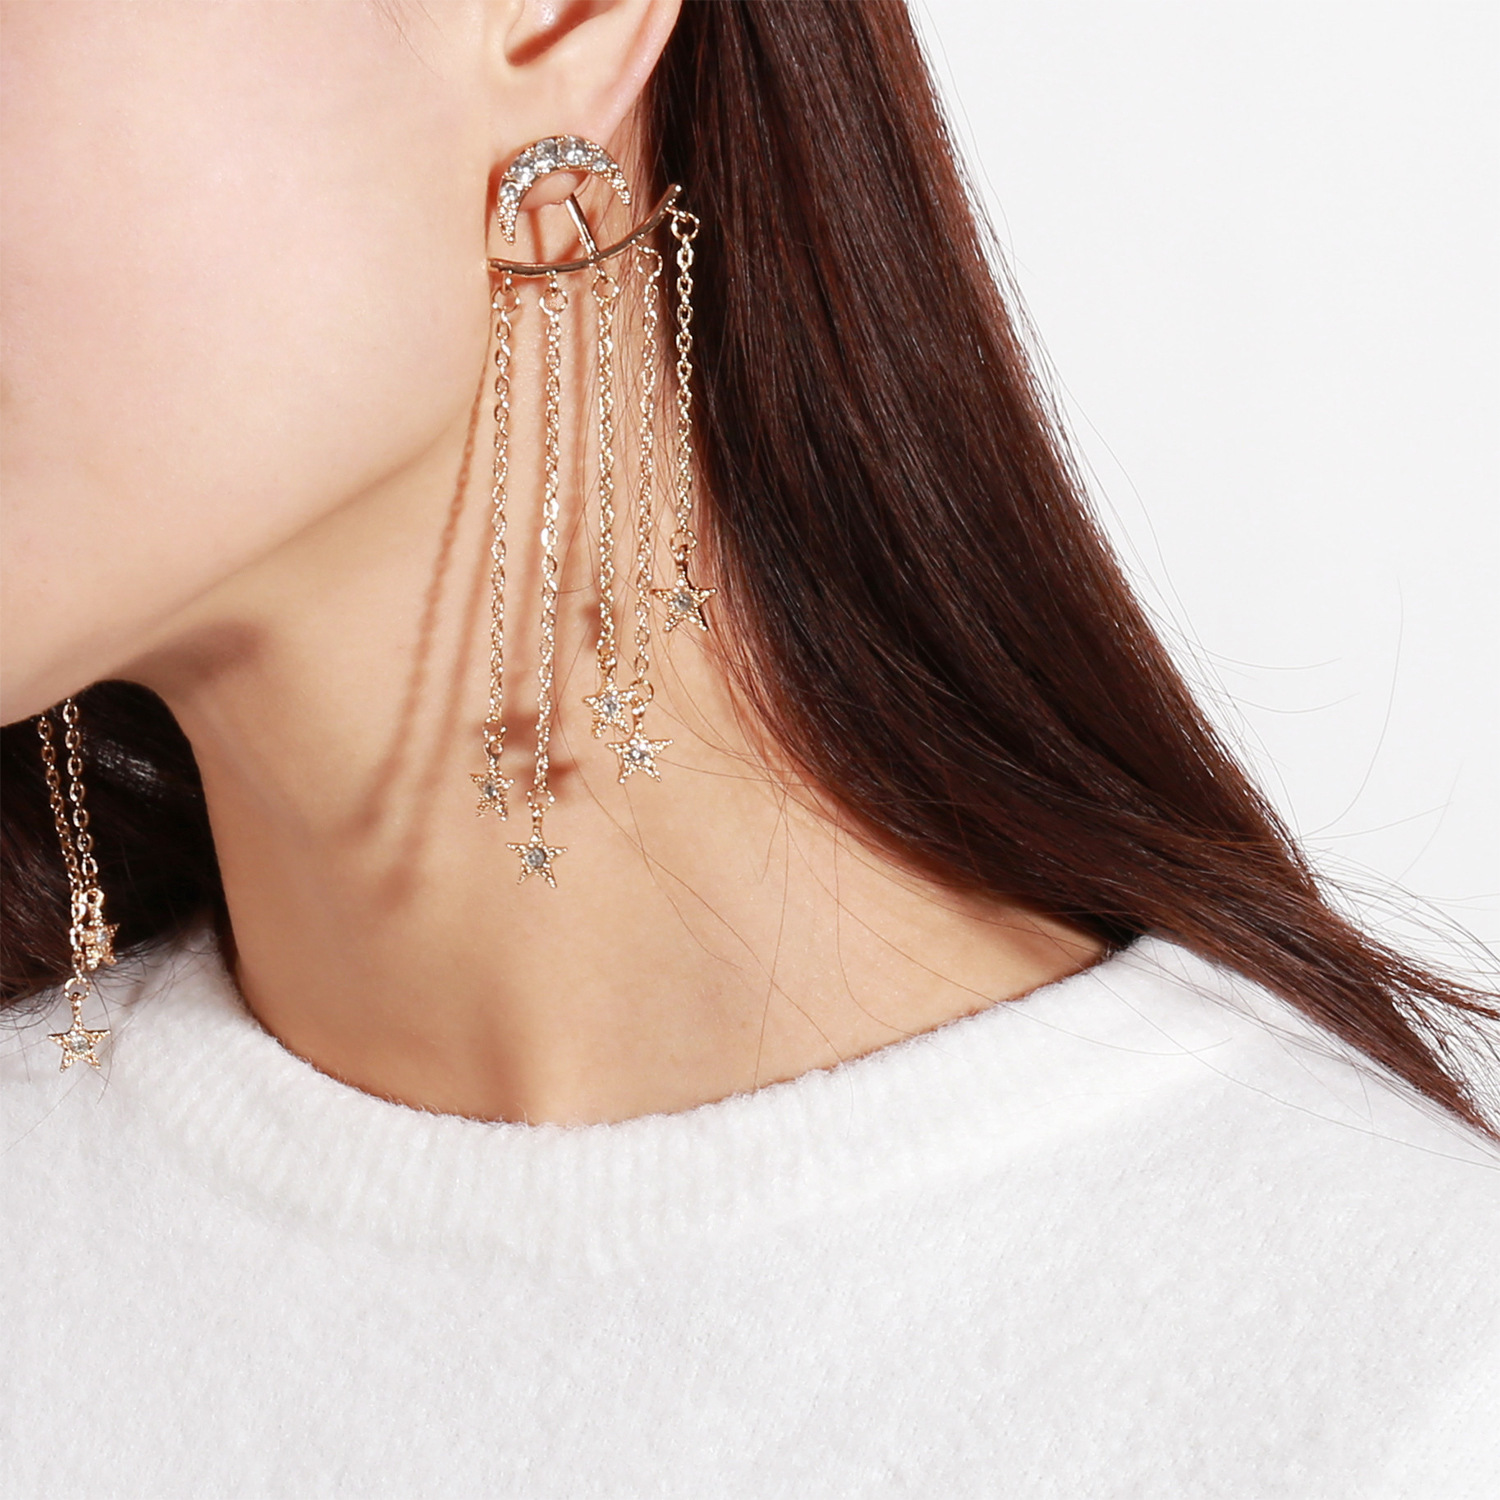 Fashionable business temperament Earrings Lunar Star and Shoot Dropping Ear Nail